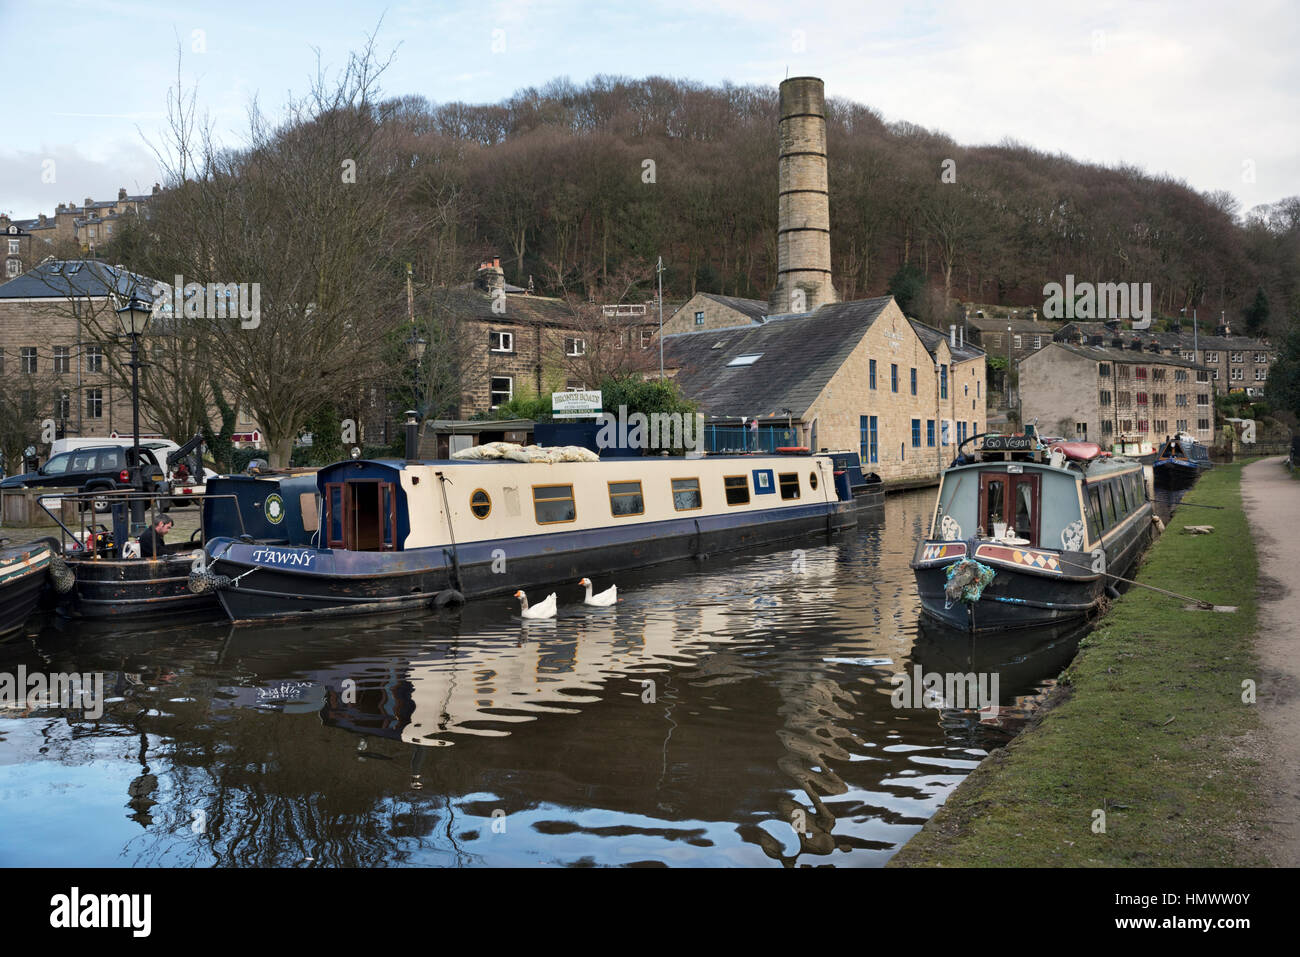 The Rochdale Canal at Hebden Bridge, West Yorkshire, UK - Stock Image